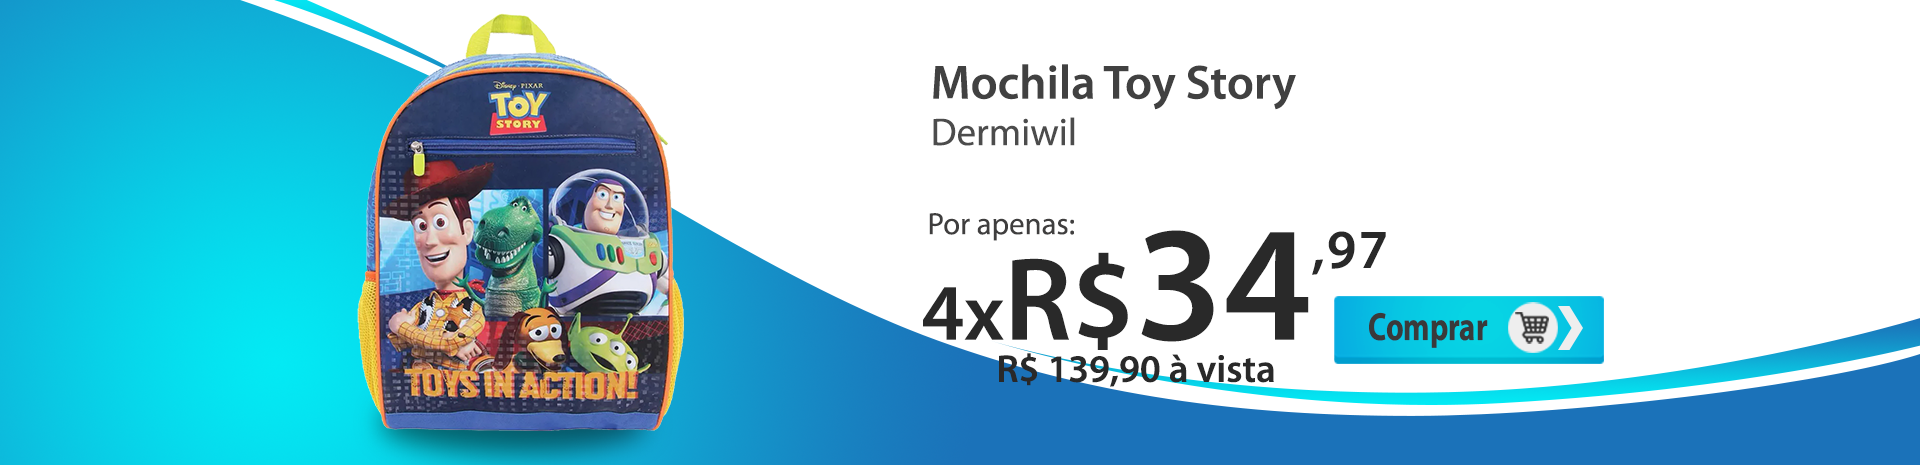 banner categoria mochila toy